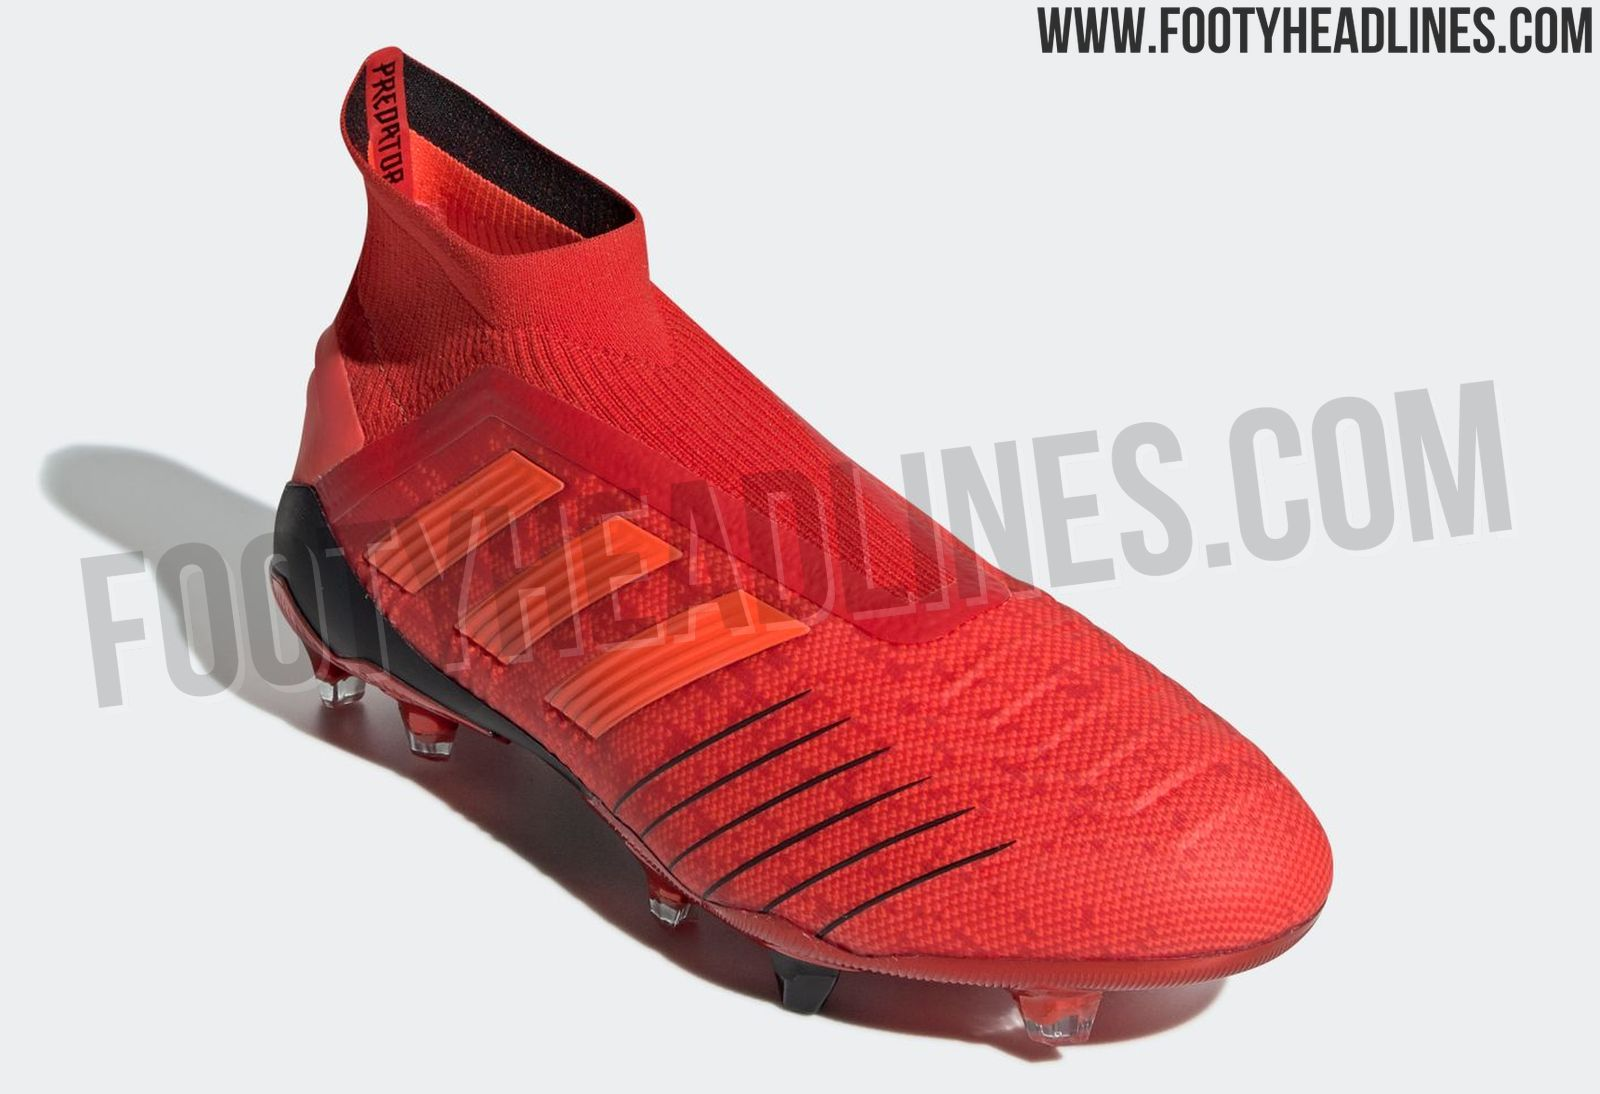 53e0c7030859 Now we have received information that Adidas will release the first-ever cheap  laceless soccer cleat as part of the next-generation Adidas Predator ...